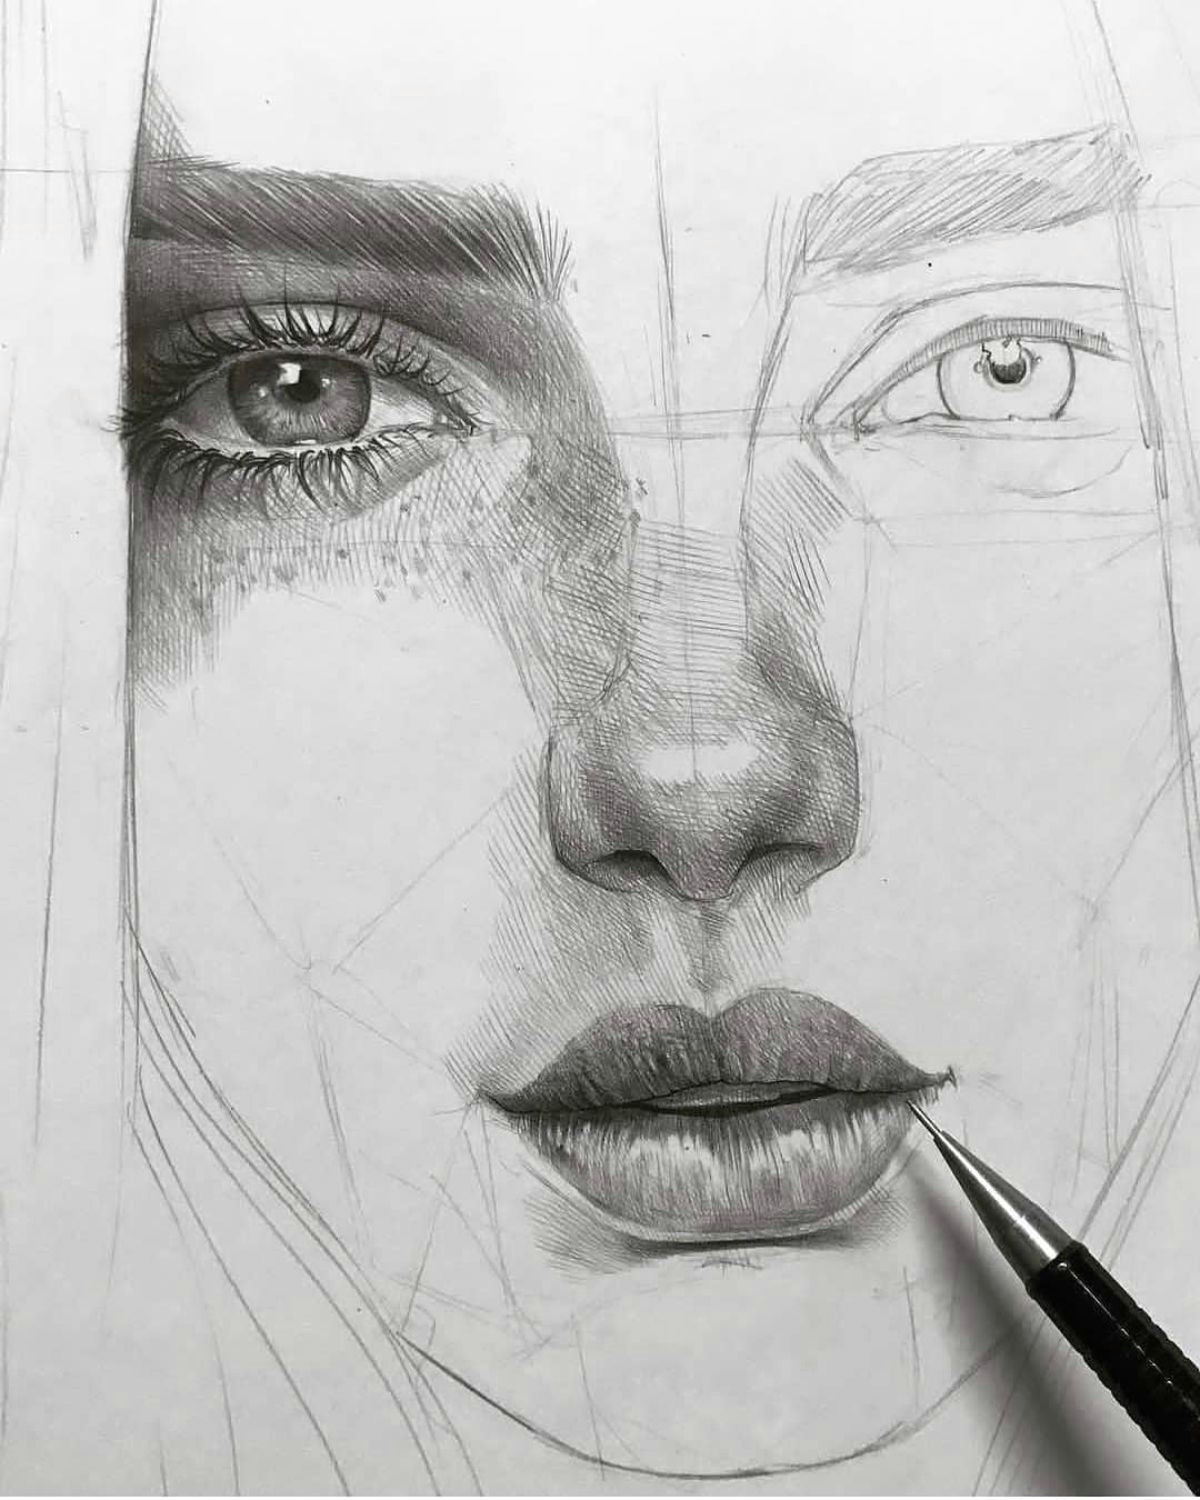 amazing art by maloart sketch eye pencil drawing portrait